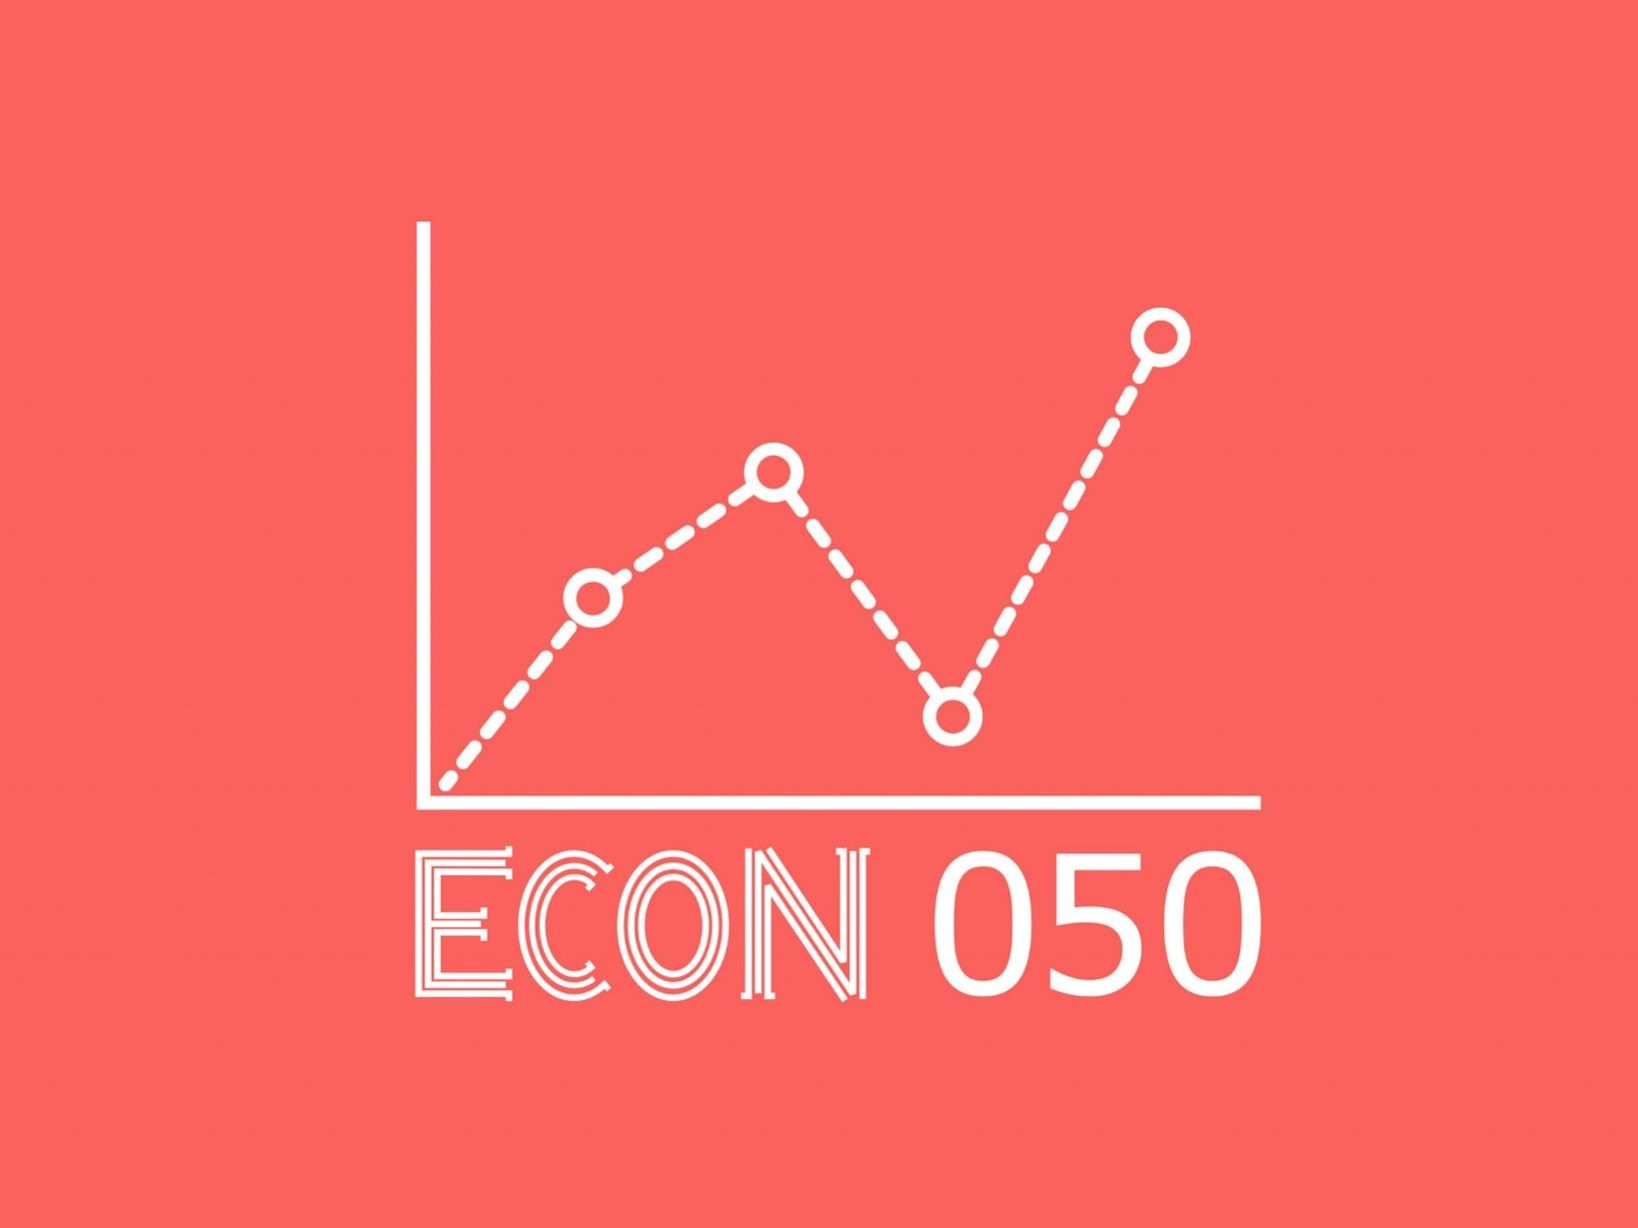 Econ 050 is a podcast made in partnership between the Faculty of Economics and Business and The Northern Times.